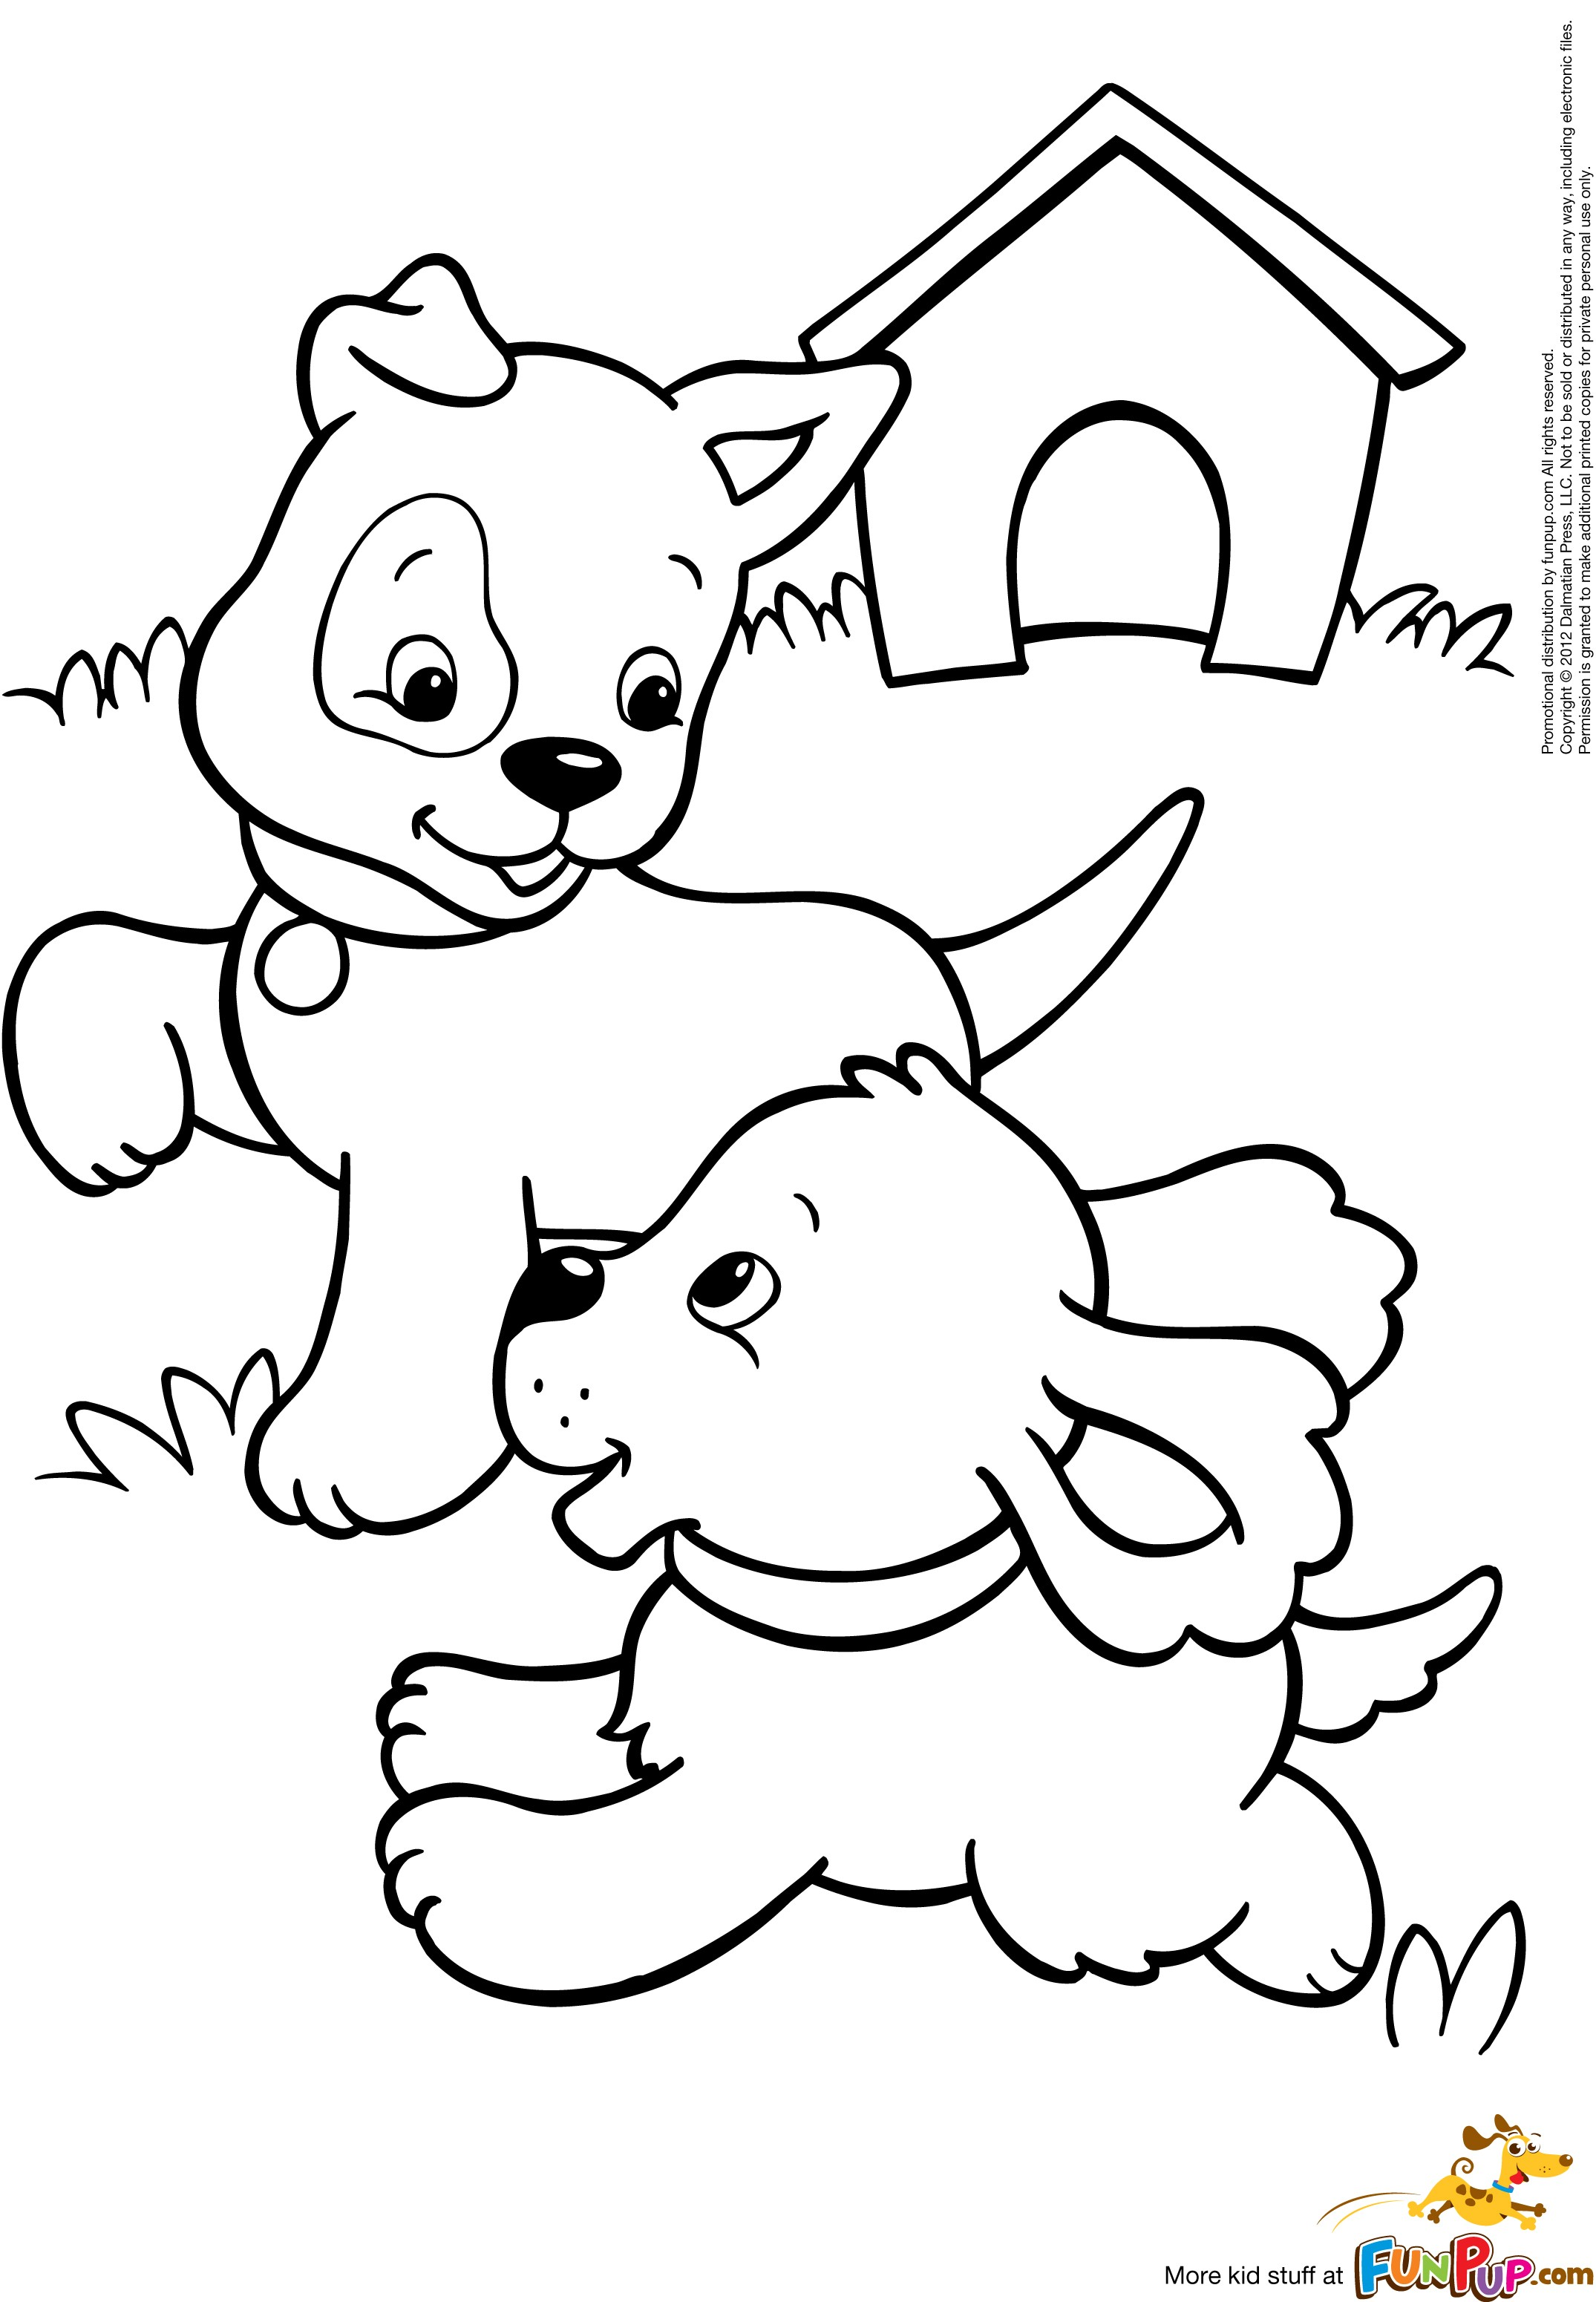 coloring pic of dog dog coloring pages for kids preschool and kindergarten pic coloring of dog